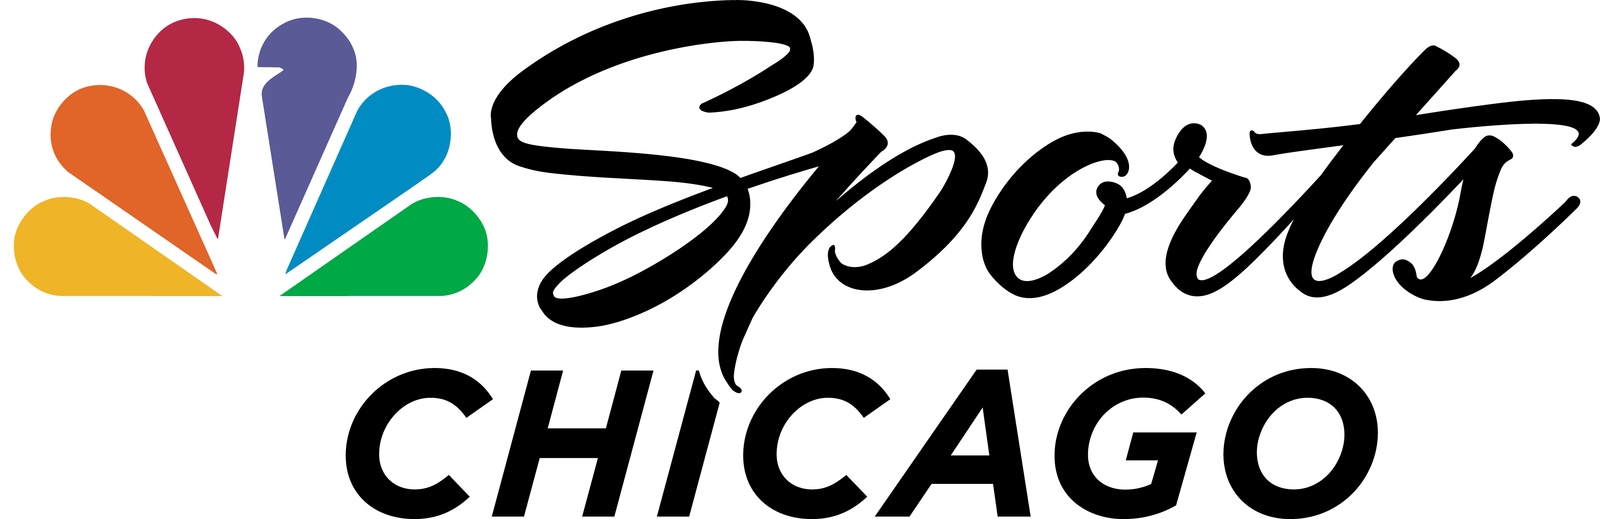 WINDY CITY BULLS PARTNER WITH NBC SPORTS CHICAGO TO BROADCAST 17 HOME GAMES DURING 2018-19 REGULAR SEASON - Windy City Bulls